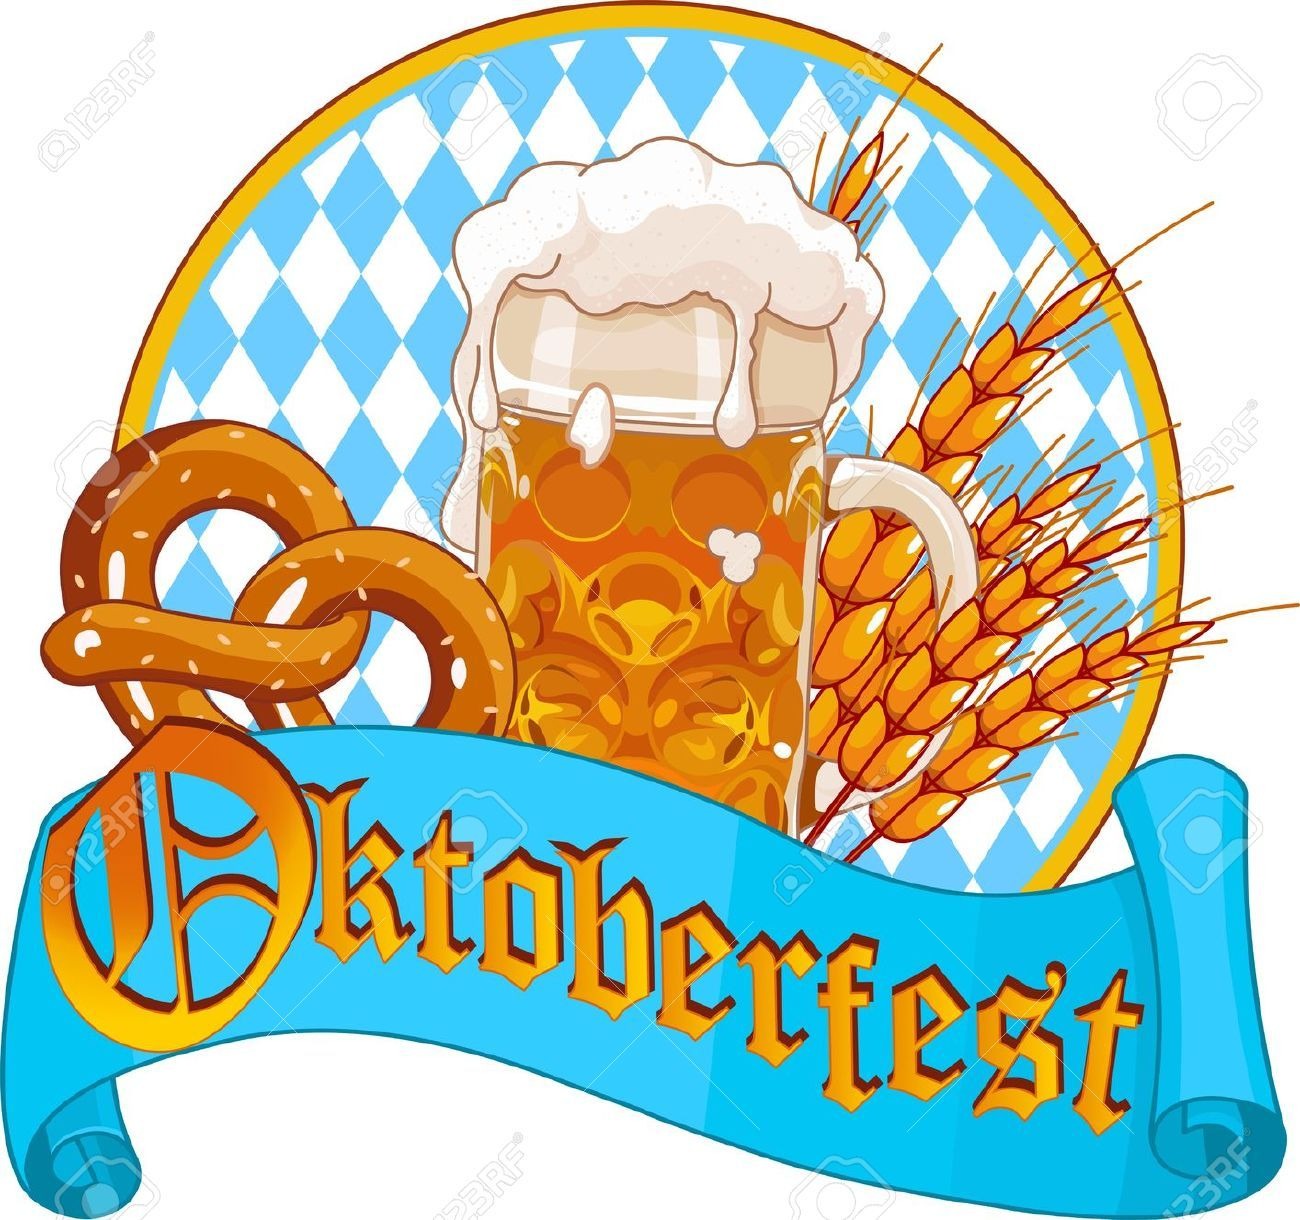 Oktoberfest clipart free download clipart library Oktoberfest Stock Vector Illustration And Royalty Free Oktoberfest ... clipart library